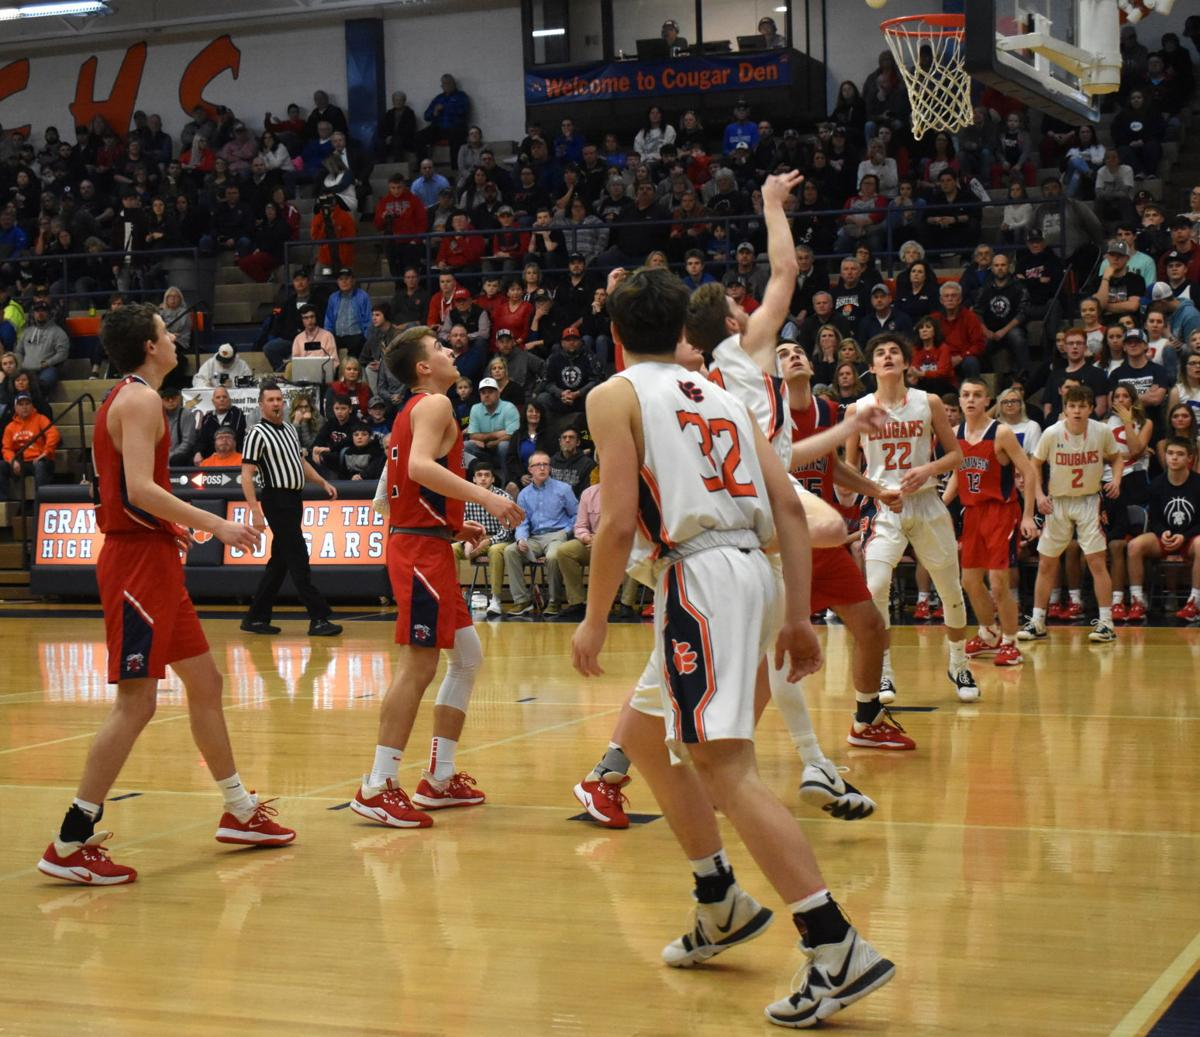 Cougars claw their way to championship game 2